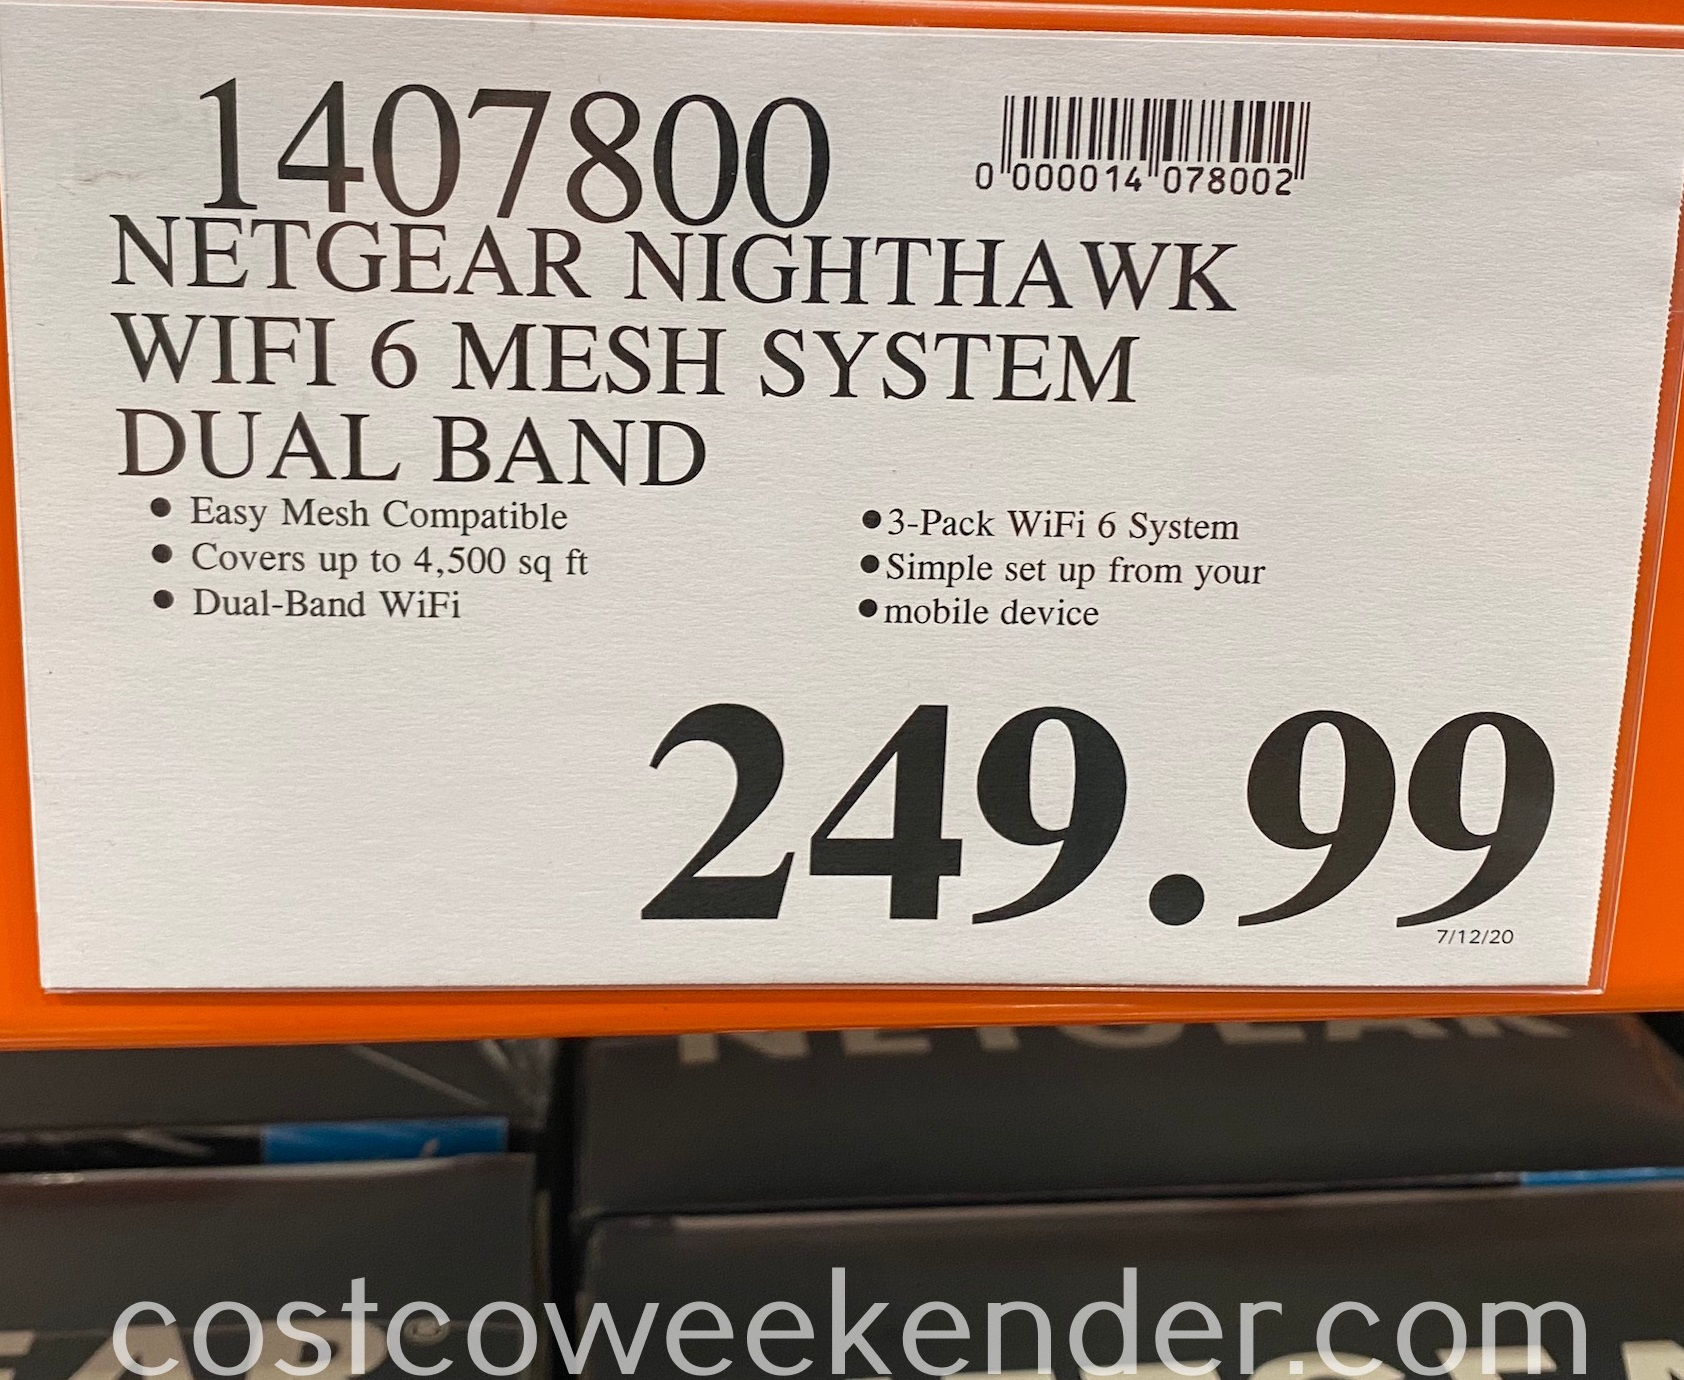 Deal for the Netgear Nighthawk Mesh WiFi 6 System at Costco